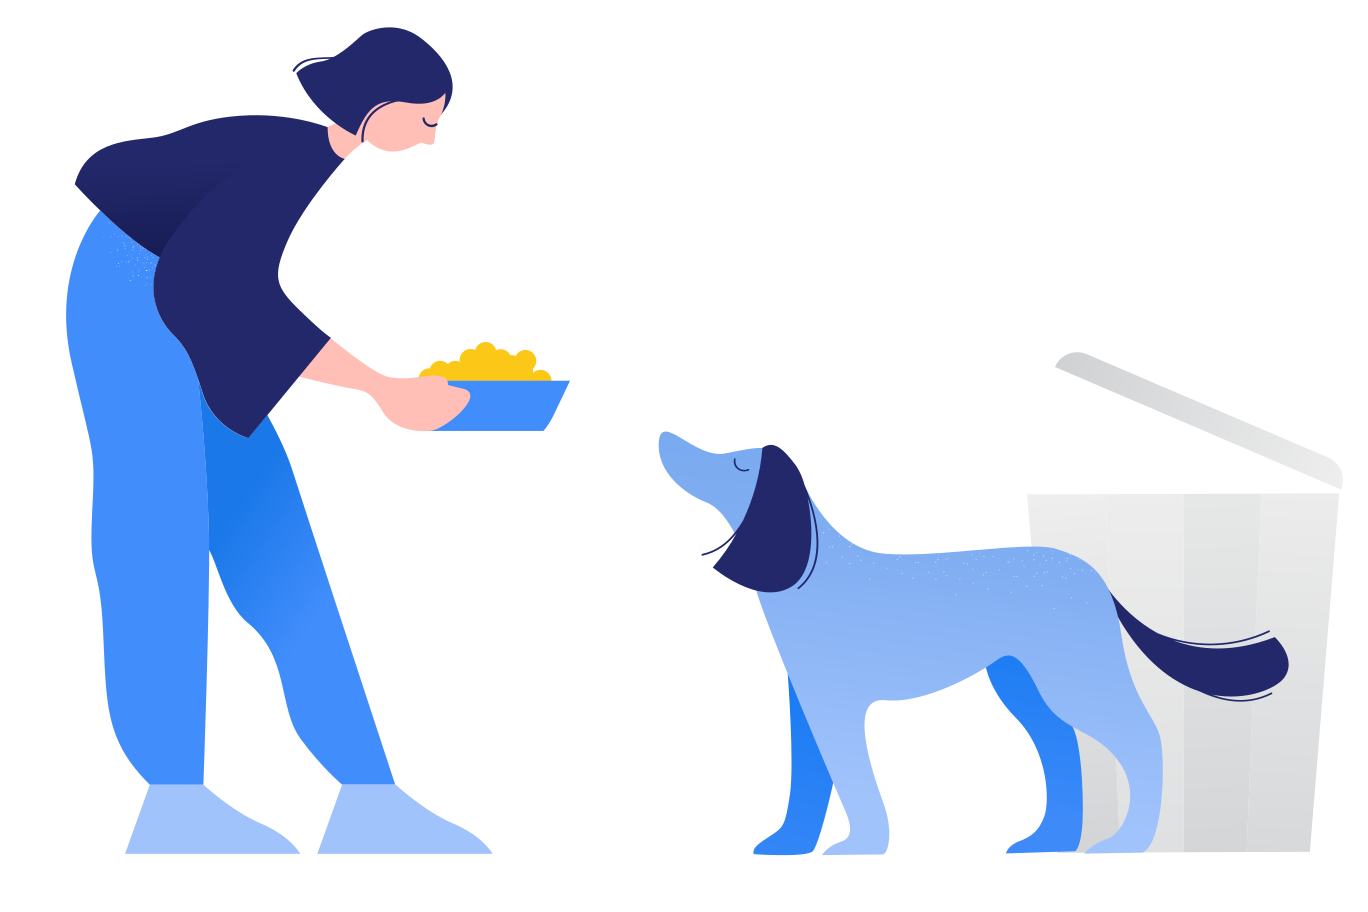 Caring for stray animals Clipart illustration in PNG, SVG